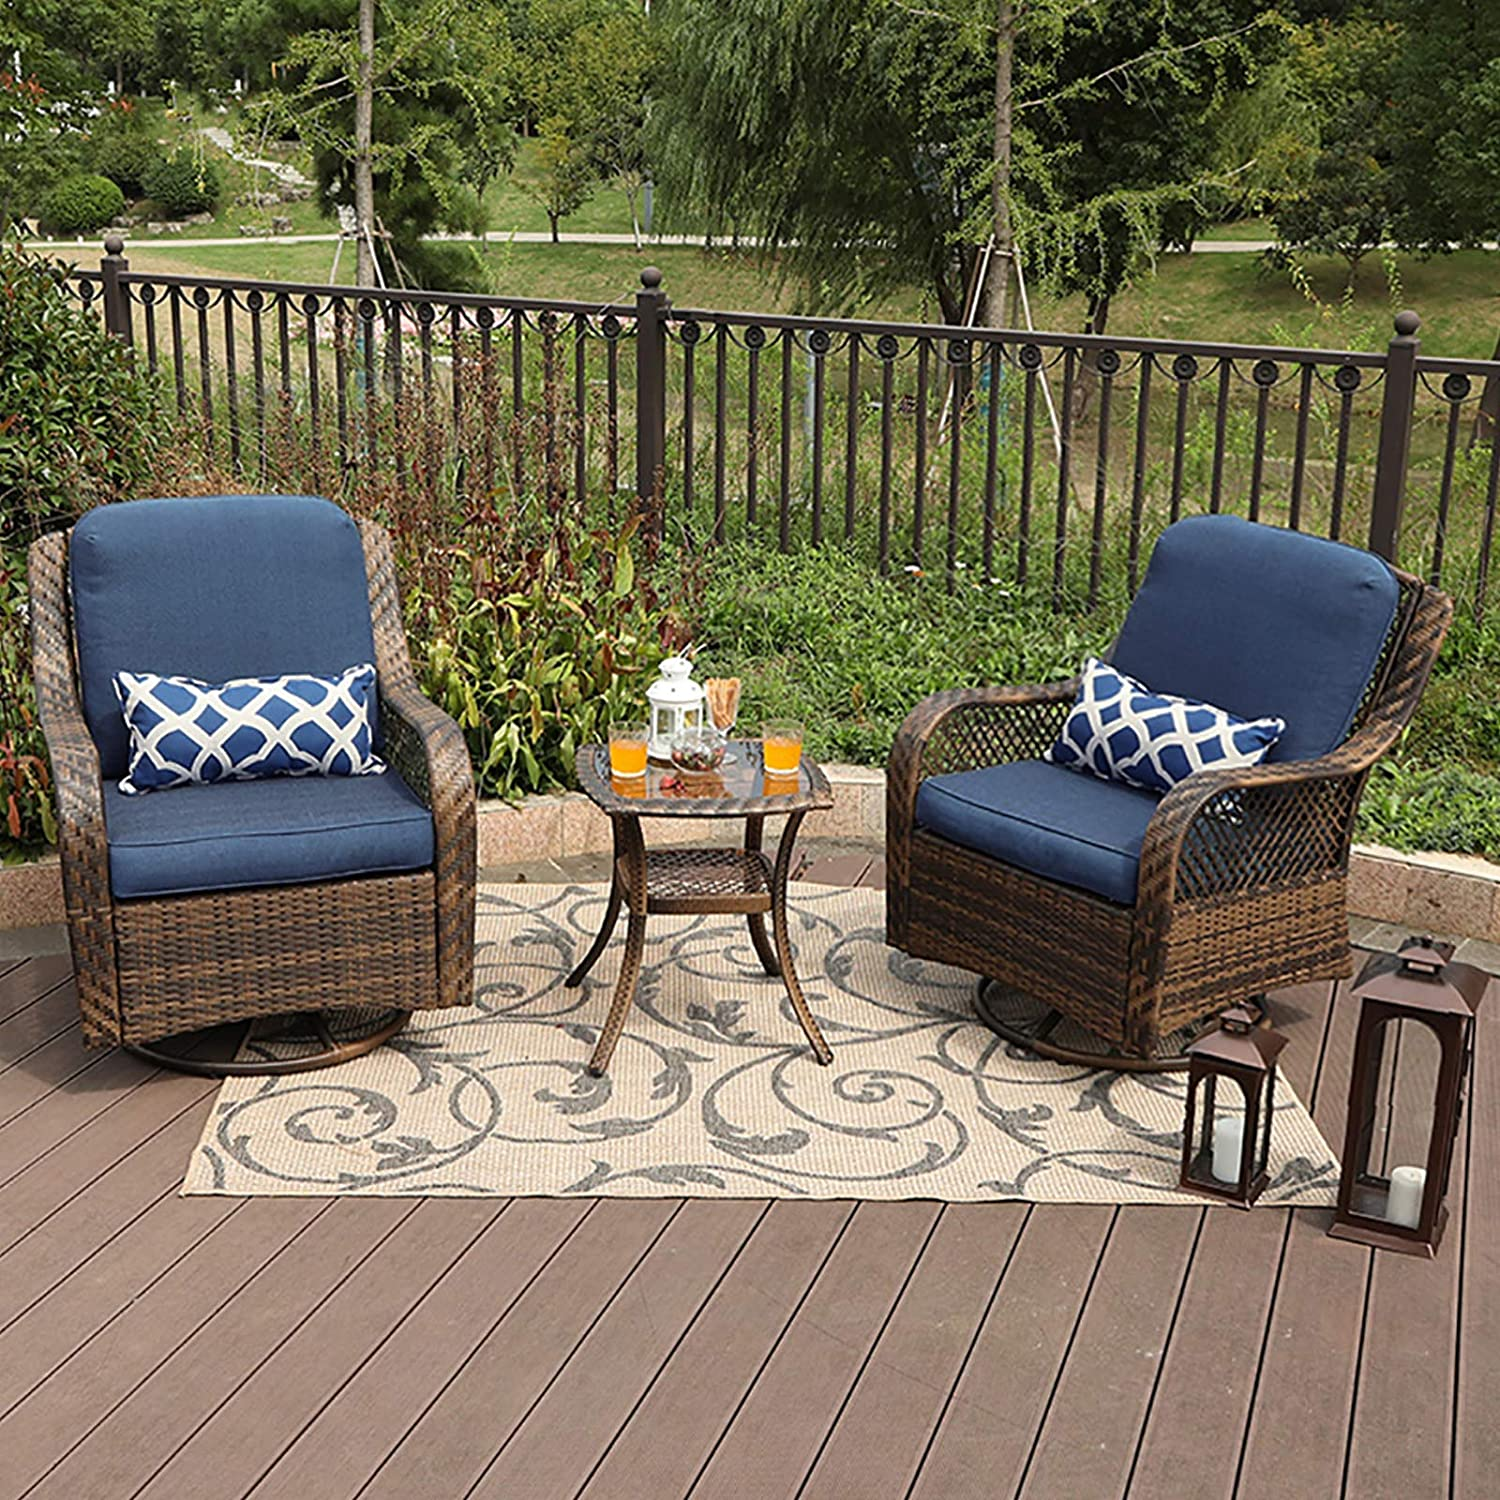 mf studio rattan swivel rocking chairs 3 pc patio conversation set outdoor bistro set lawn garden with 2 cushioned chairs 1 side table